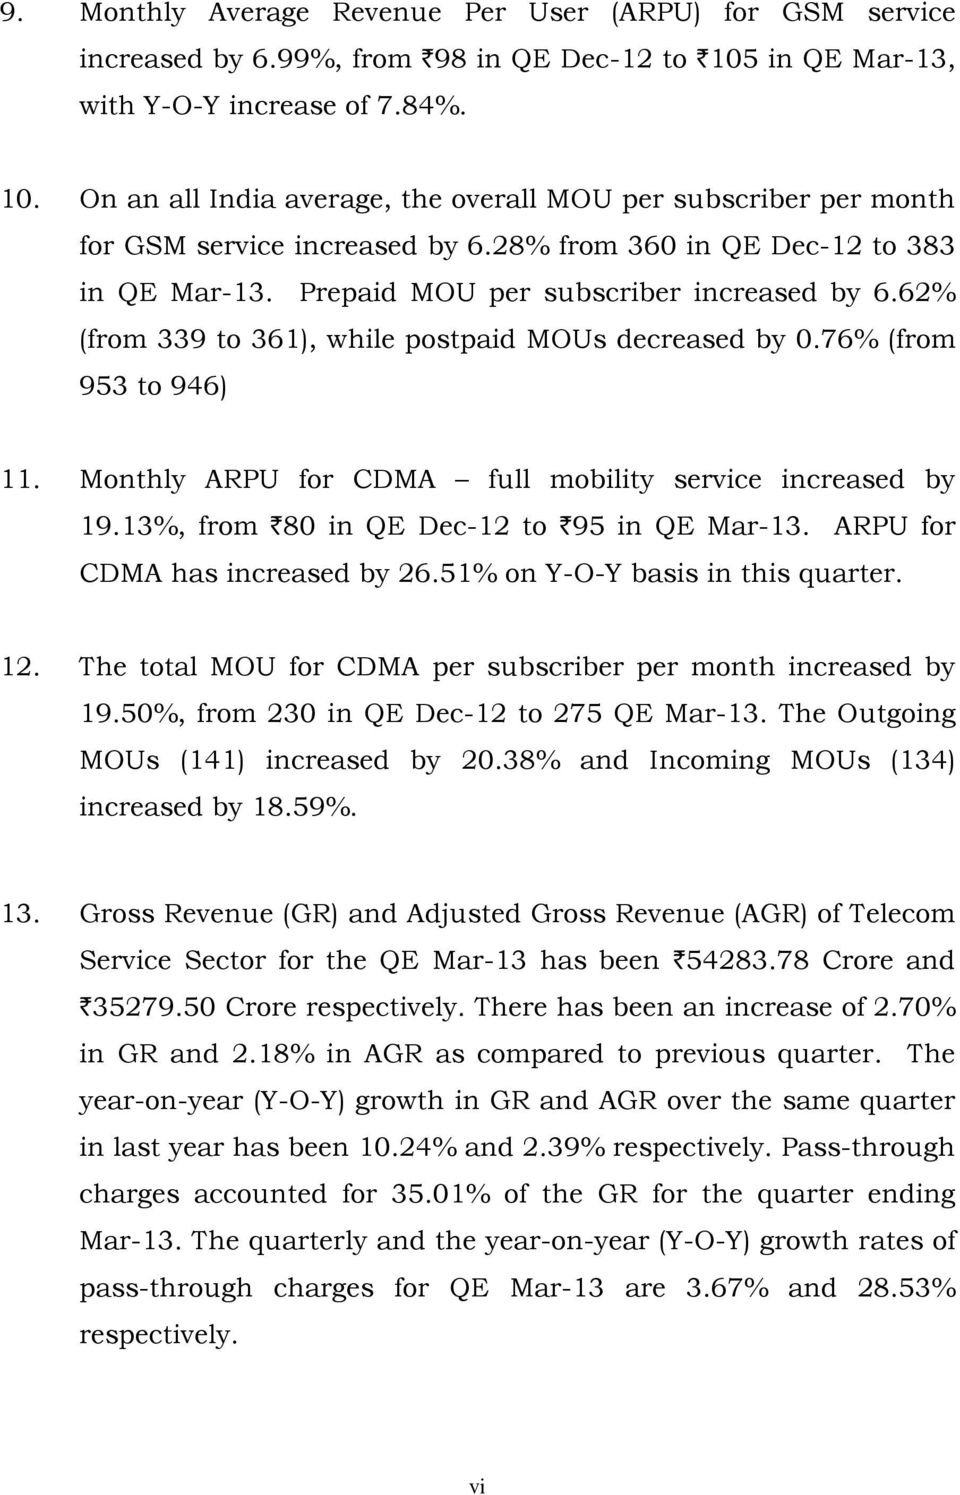 62% (from 339 to 361), while postpaid MOUs decreased by 0.76% (from 953 to 946) 11. Monthly ARPU for CDMA full mobility service increased by 19.13%, from `80 in QE Dec-12 to `95 in QE Mar-13.